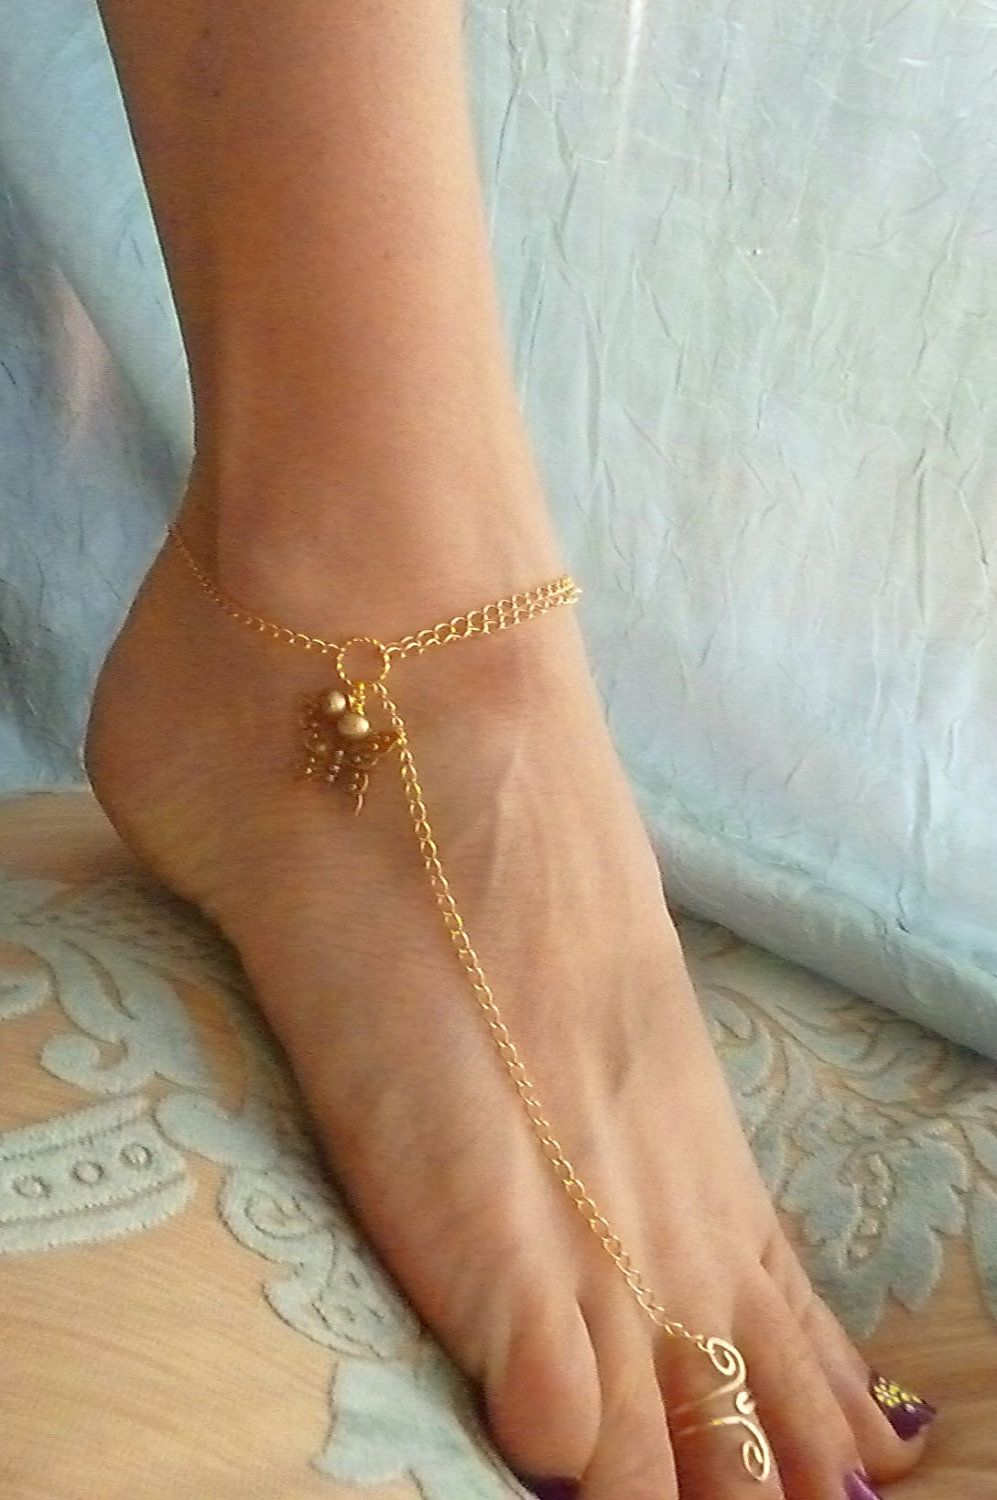 Jewelry & Accessories Humorous Heart Anklets For Women Double Chain Gold Color Ankle Bracelets Beach Barefoot Sandals Beads Love Charm Pendant Leg Foot Jewelry